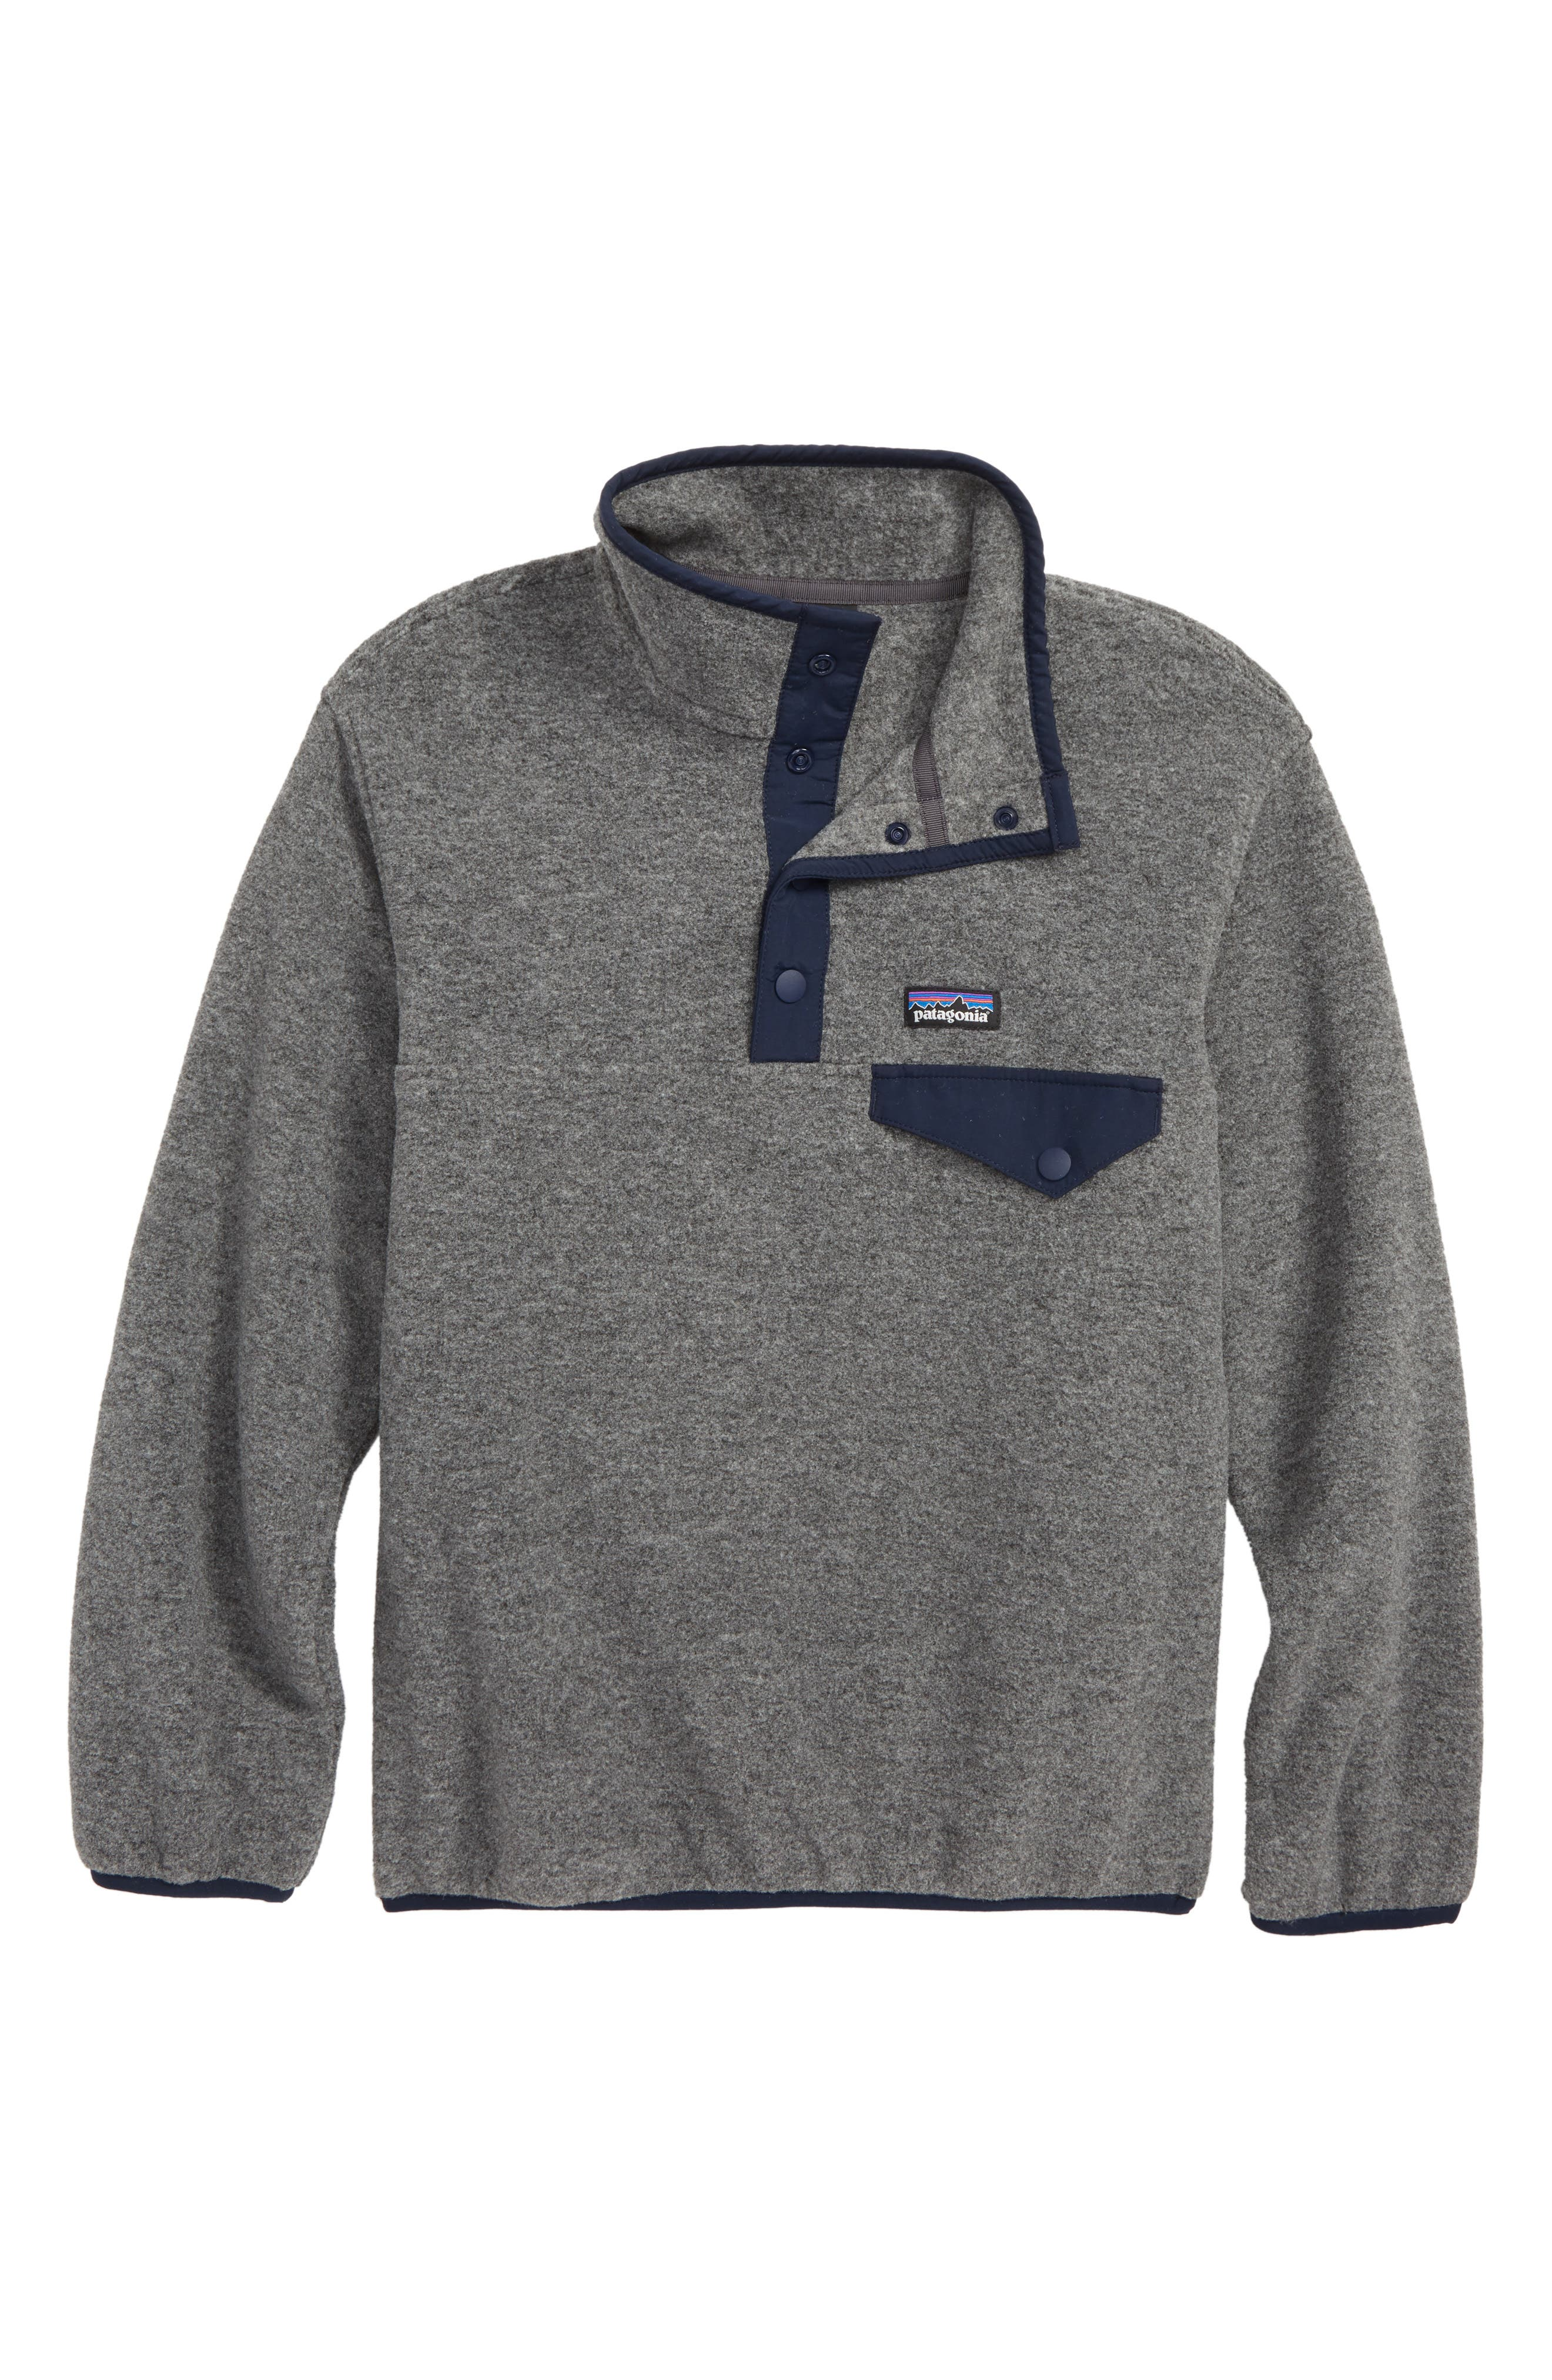 Synchilla<sup>®</sup> Snap-T<sup>®</sup> Fleece Pullover,                         Main,                         color, NAVY